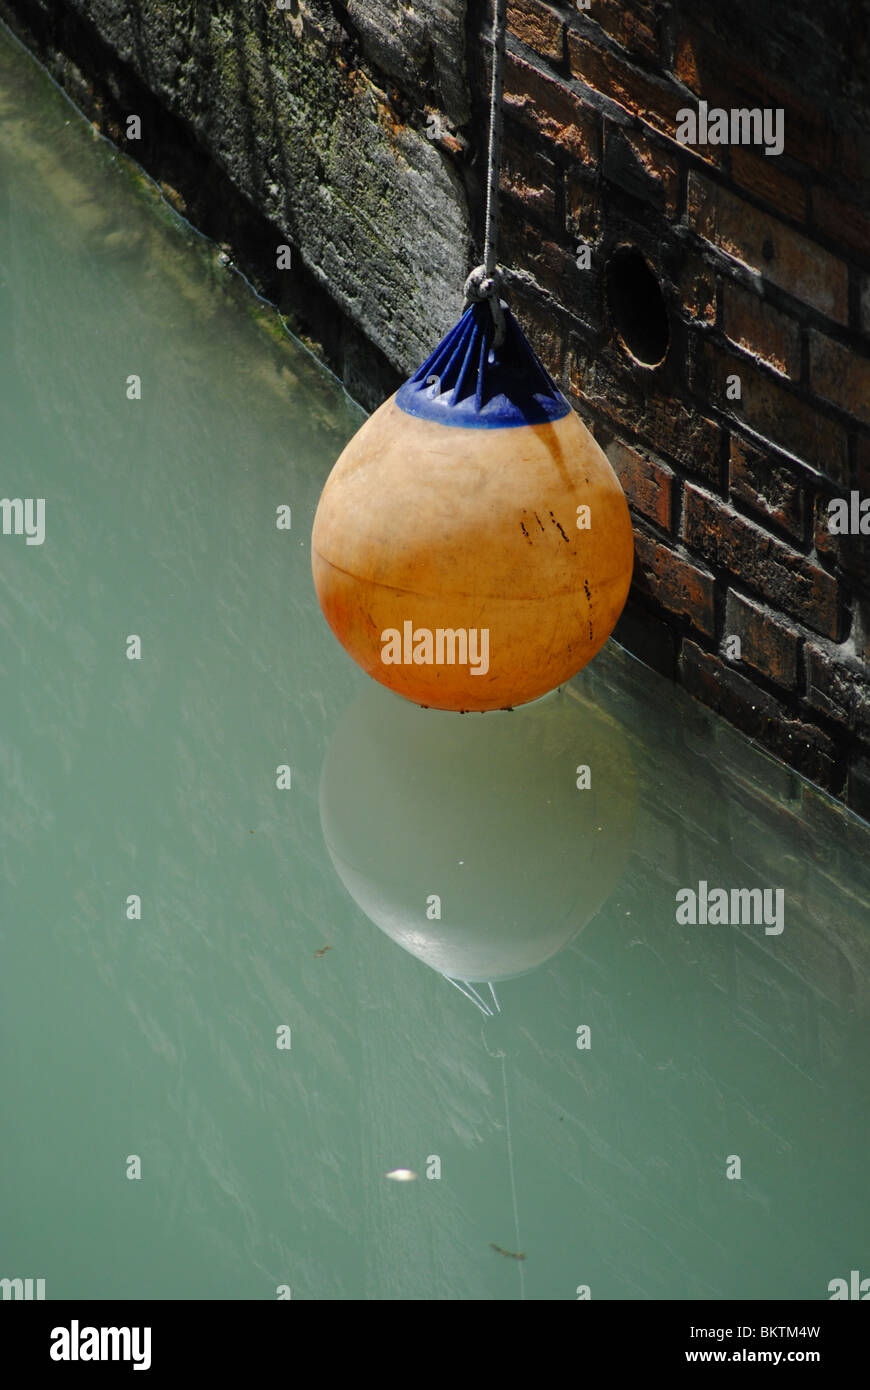 Orange buoy in a canal, Venice, Italy - Stock Image